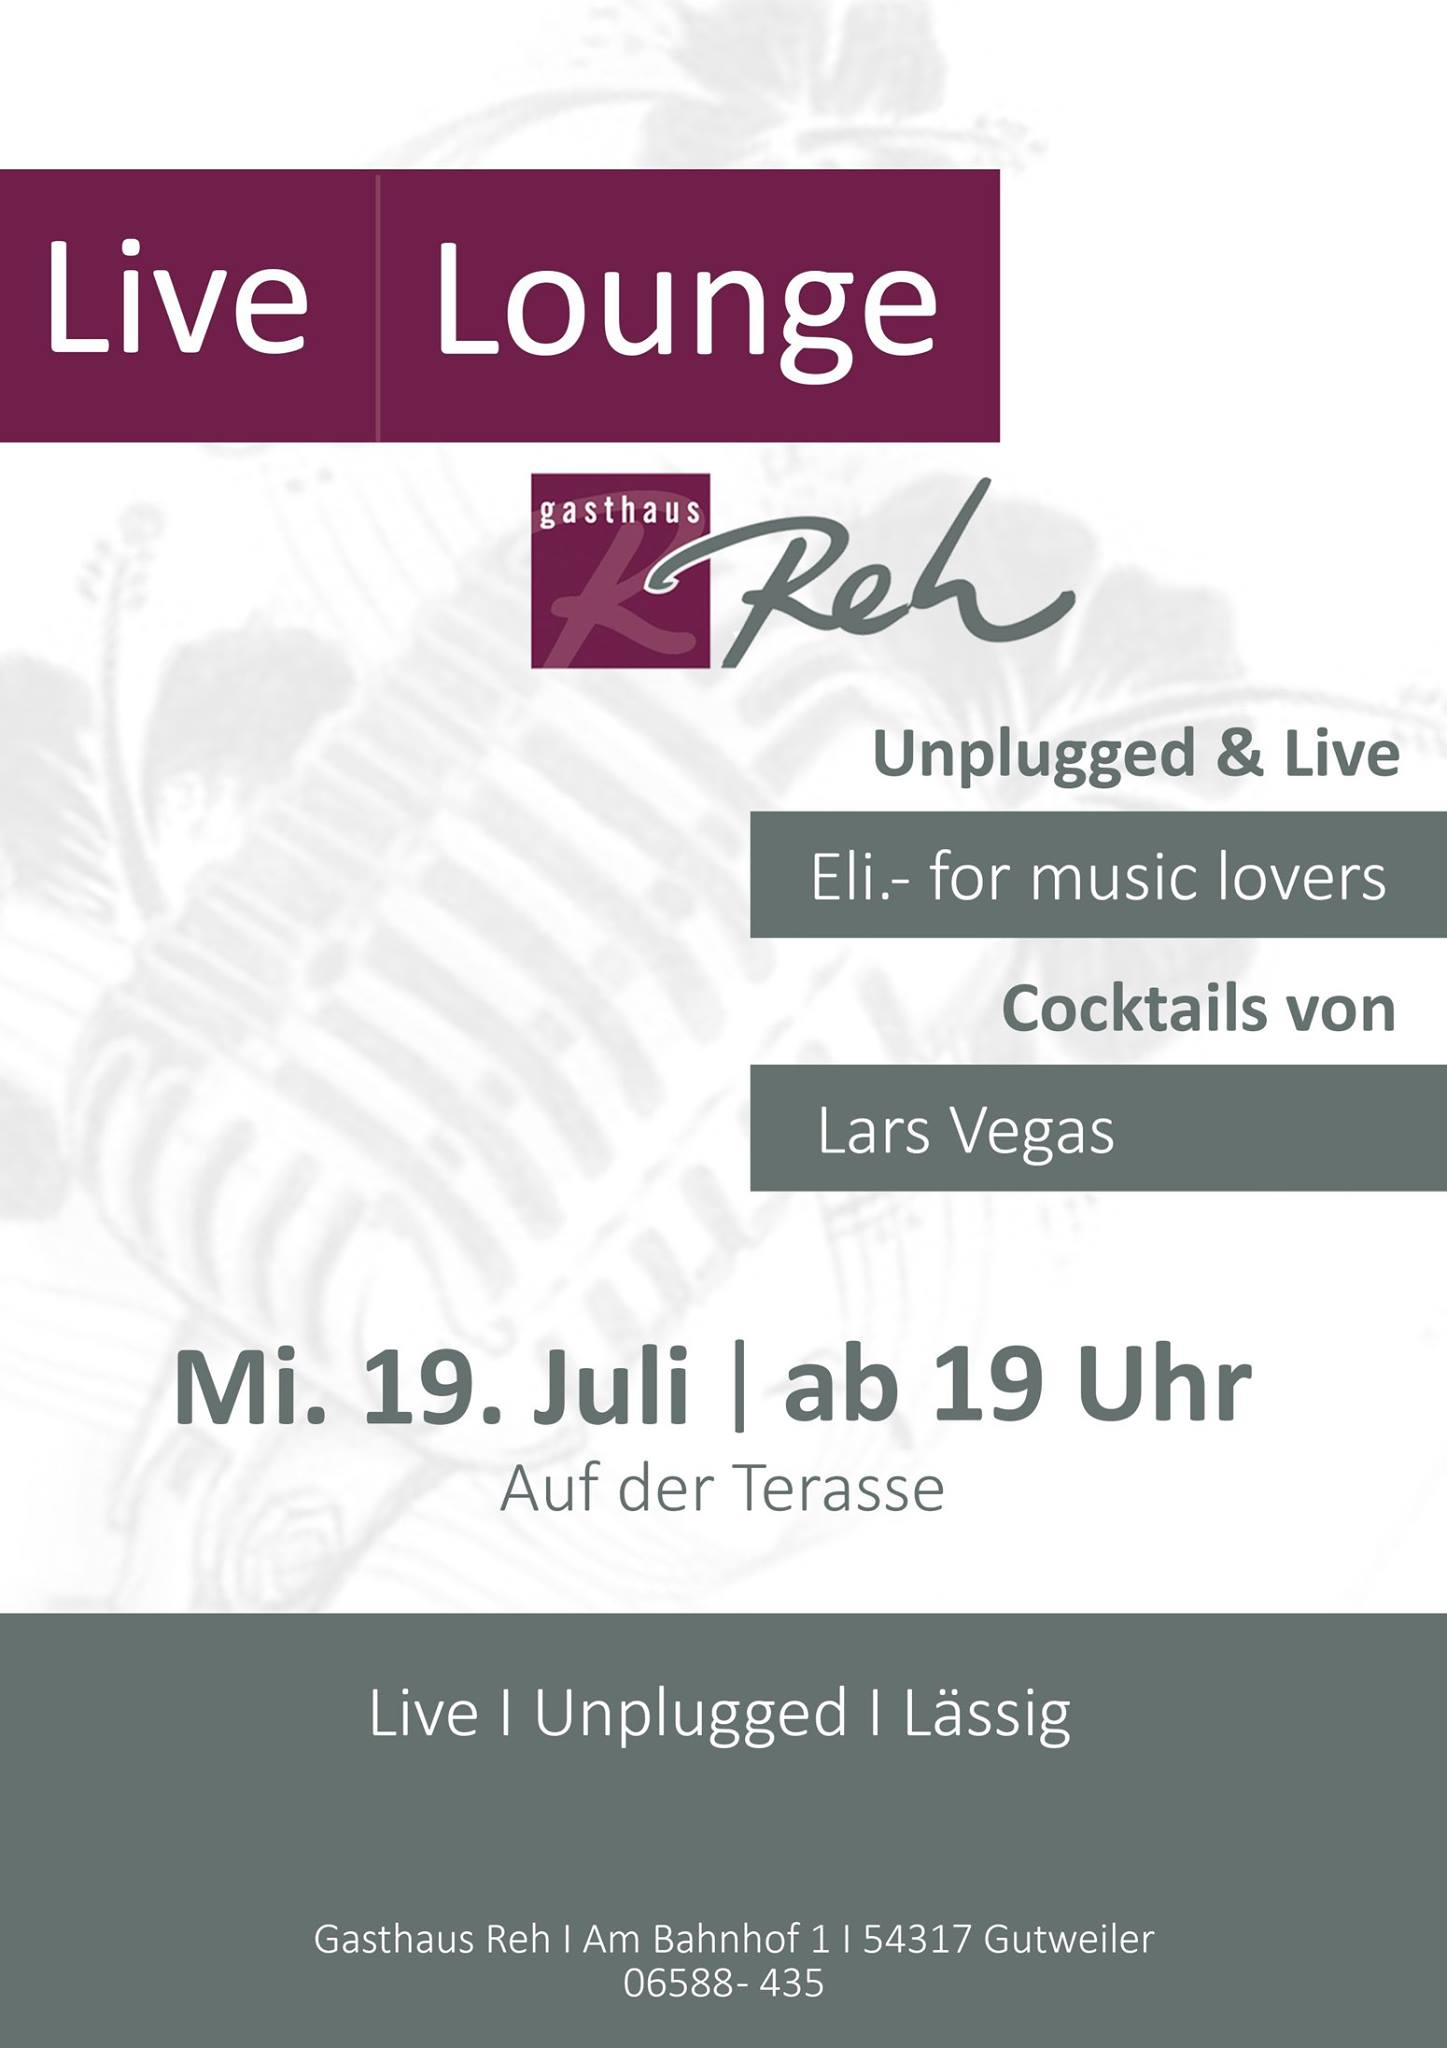 LIVE • UNPLUGGED • LÄSSIG